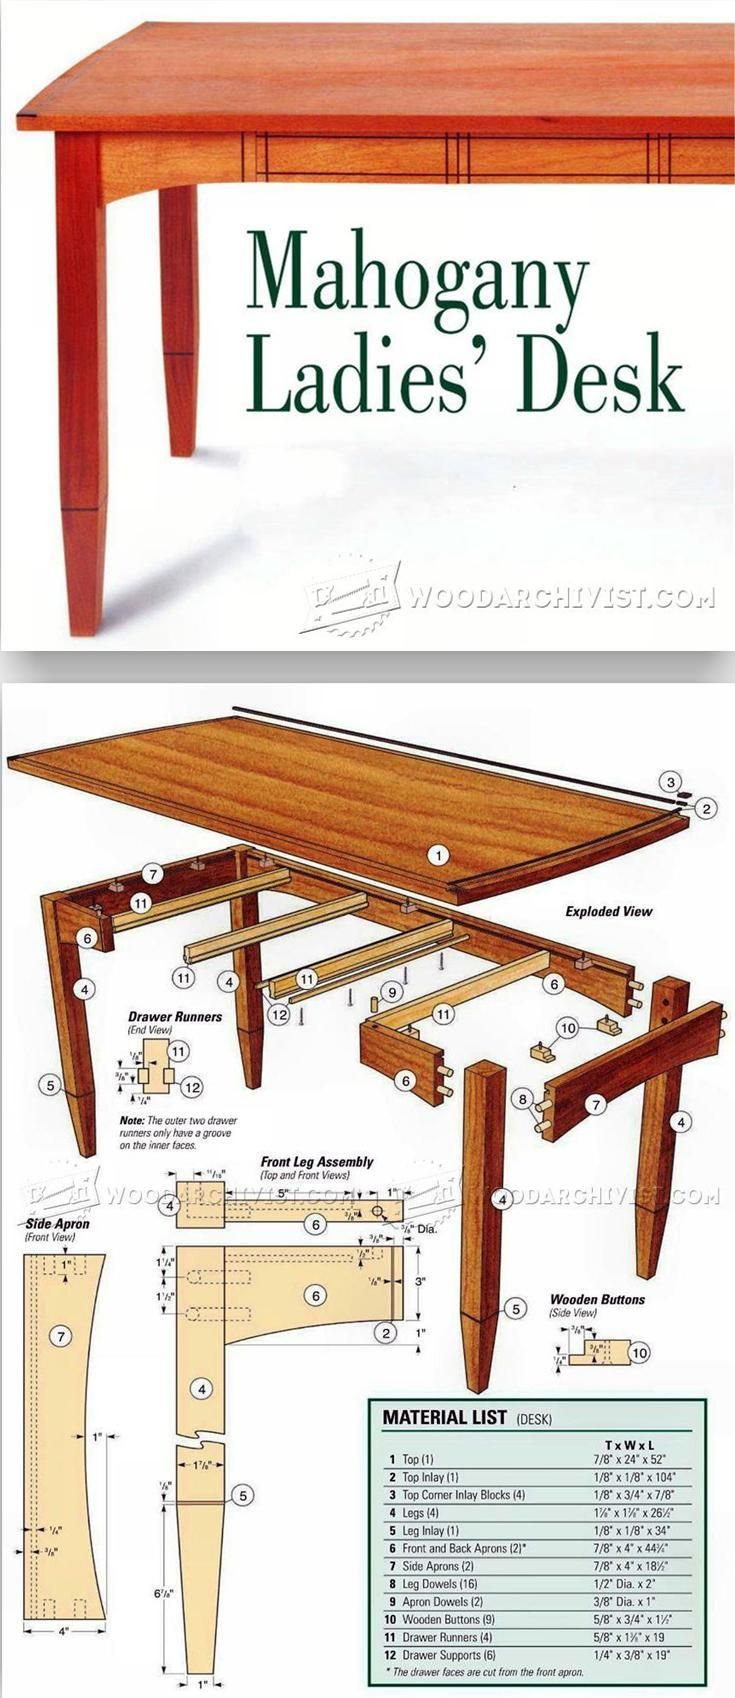 Three Drawered Desk Plans Furniture Plans And Projects Woodarchivist Com Woodworking Projects Plans Free Furniture Plans Woodworking Desk Plans